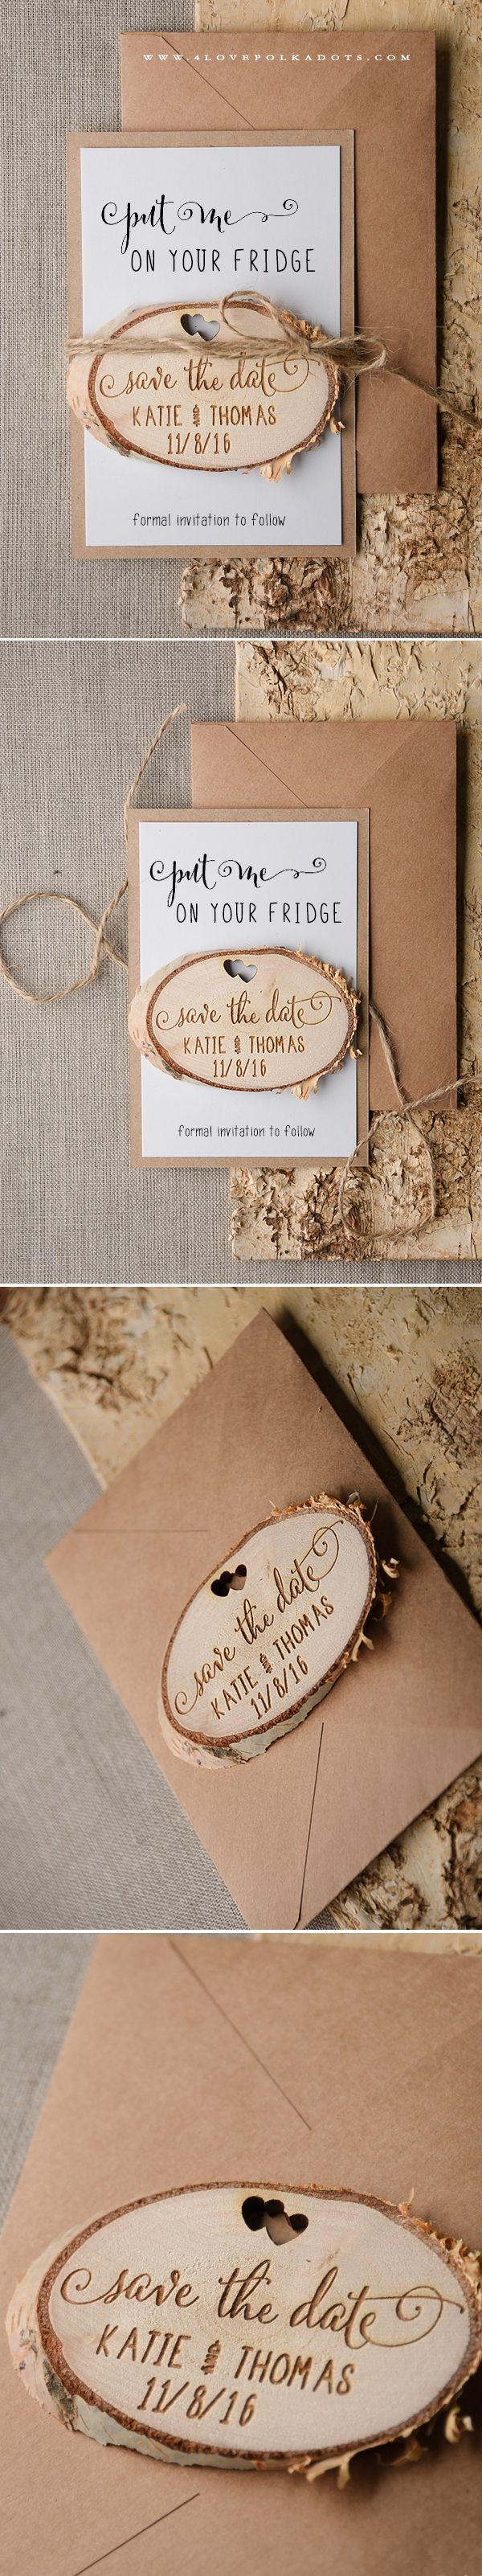 Wedding Save the Date Card with Lovely Wooden Magnet ! #realwood #rustic #countrywedding